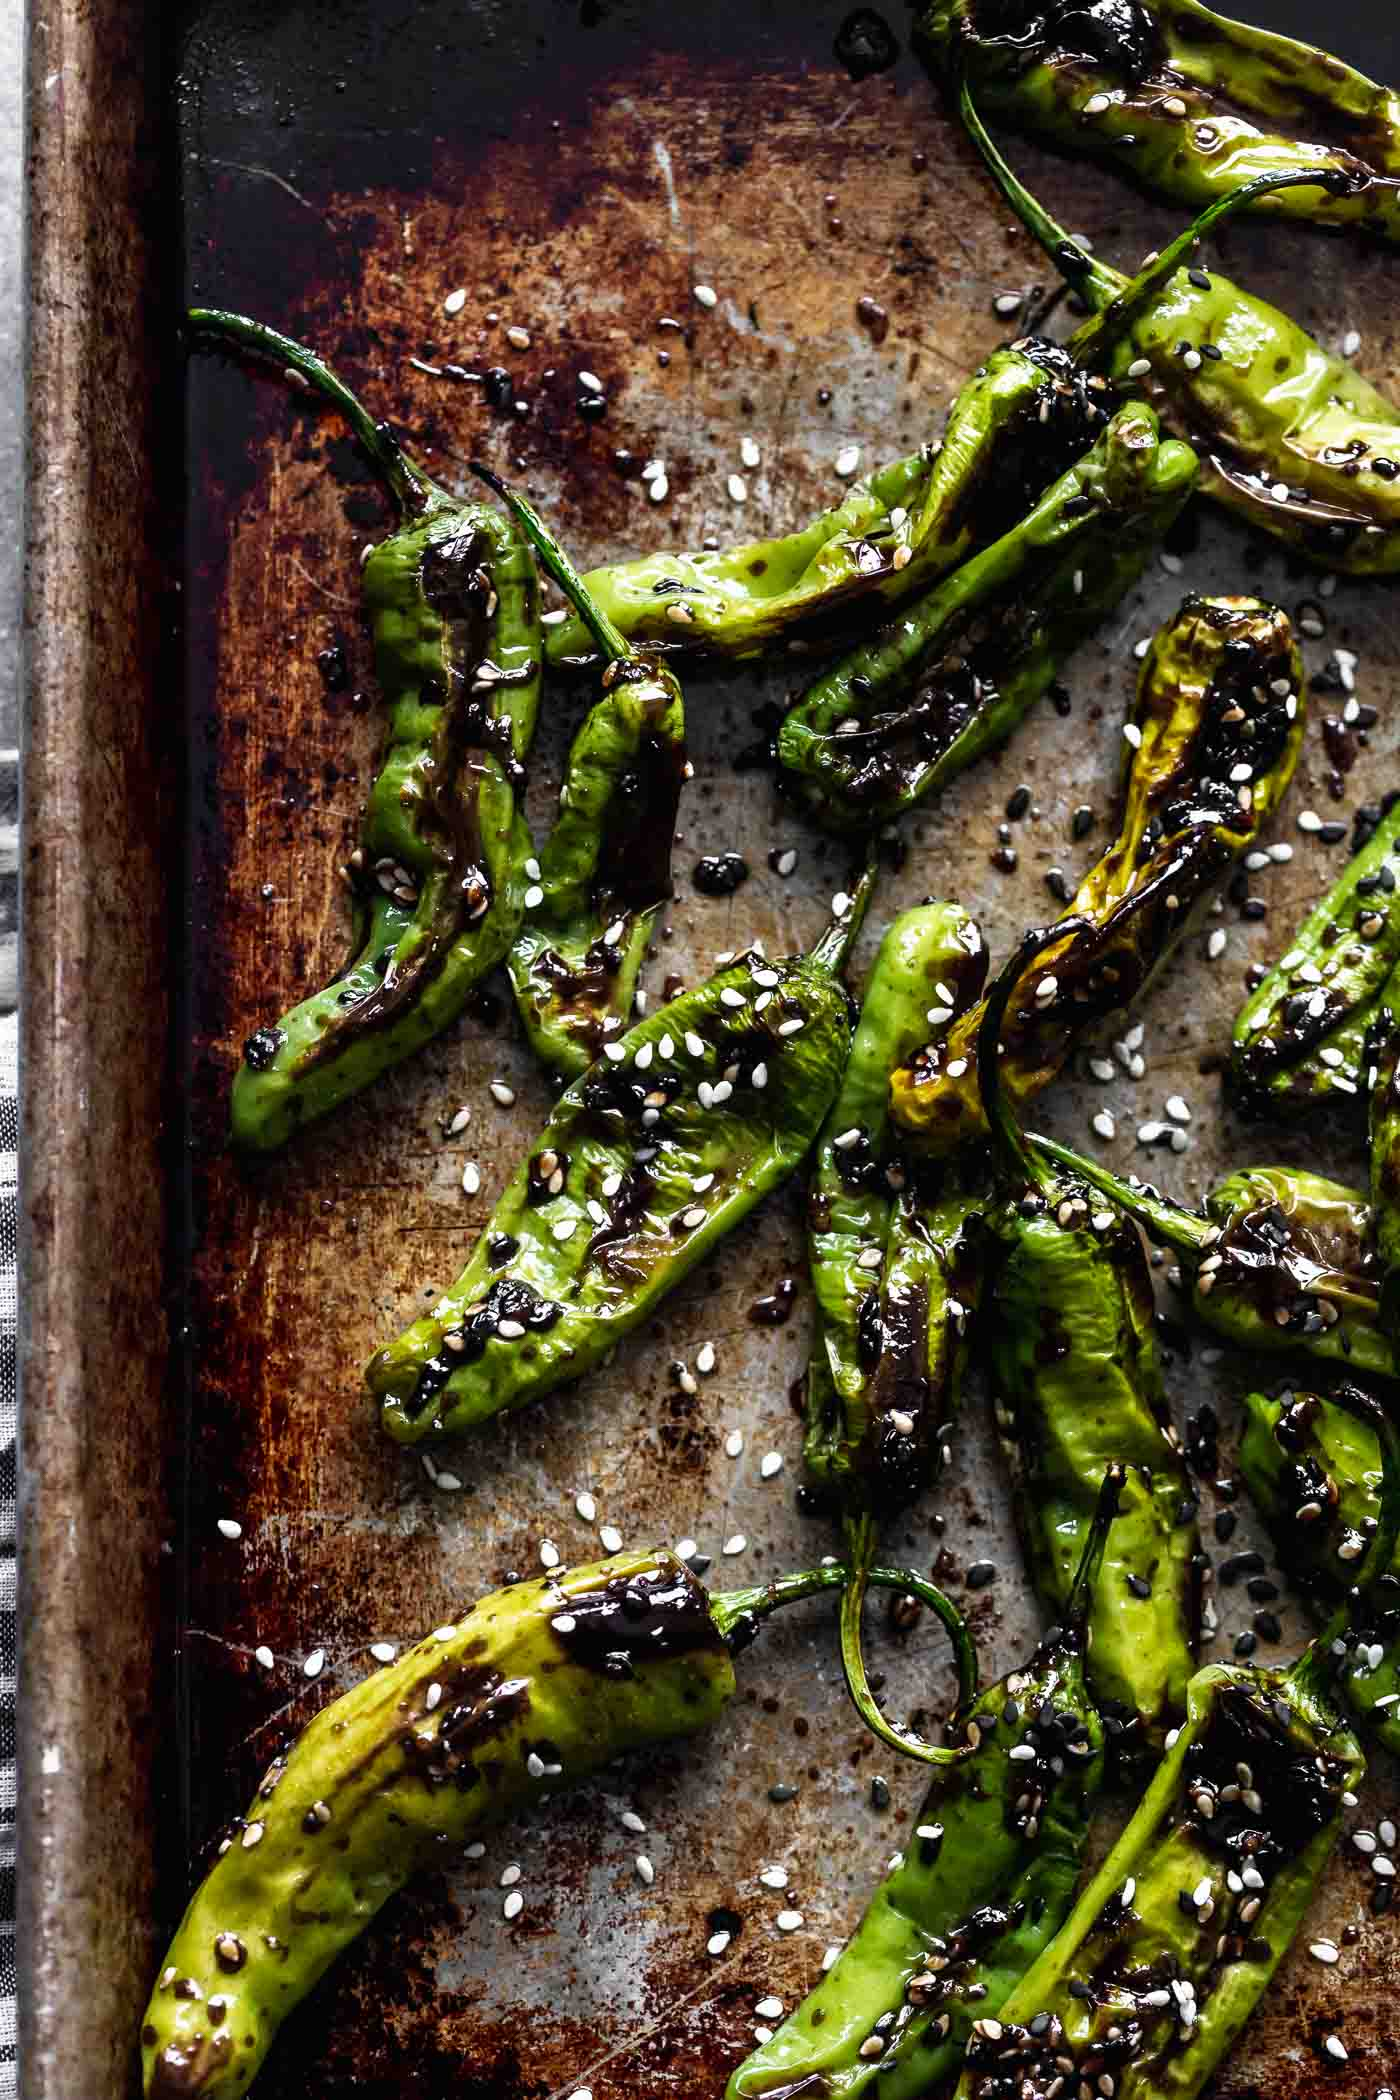 These Roasted Shishito Peppers with Soy Glaze are the perfect blend of sweet, spicy and savory. Each pepper is charred under the broiler, then tossed in an easy soy-based glaze, sesame seeds and a little bit of orange peel. The perfect snack!